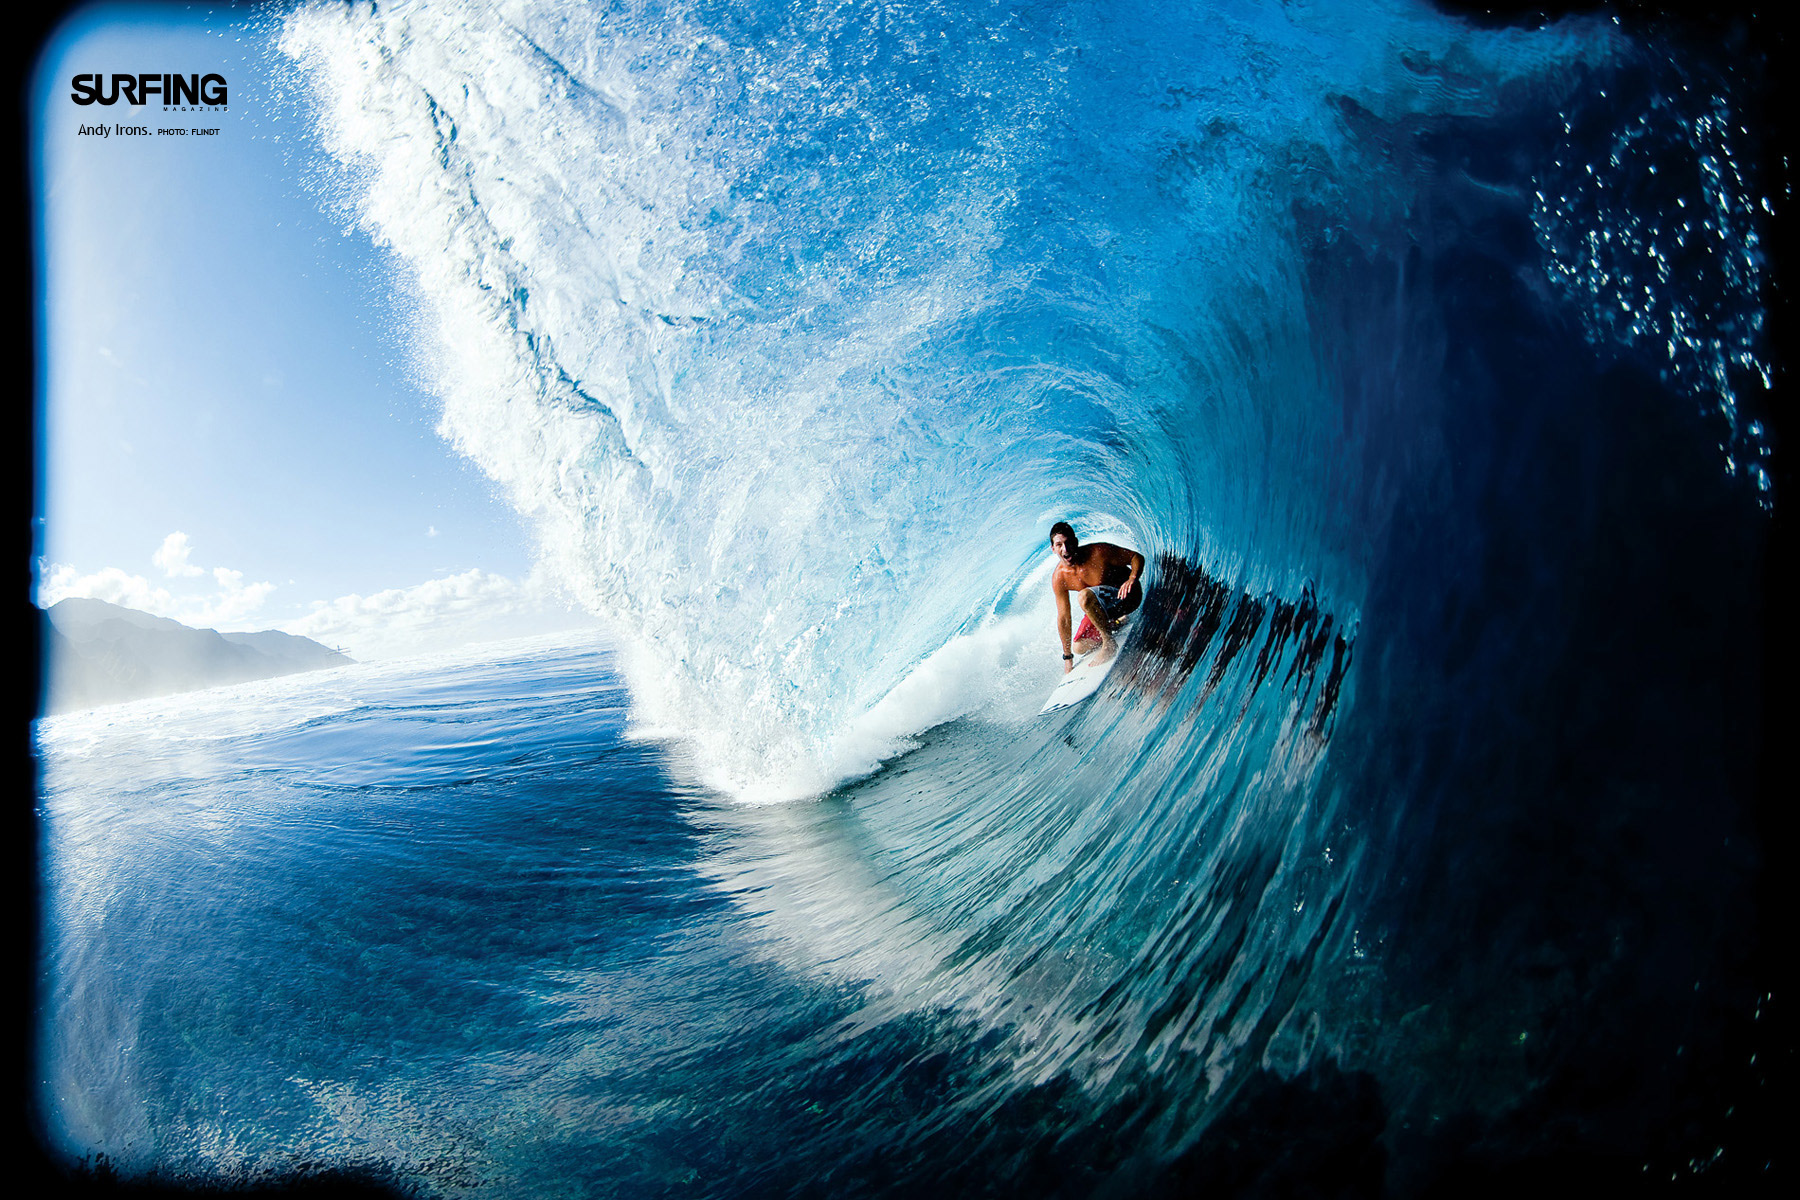 surfing wallpaper full hd - photo #48